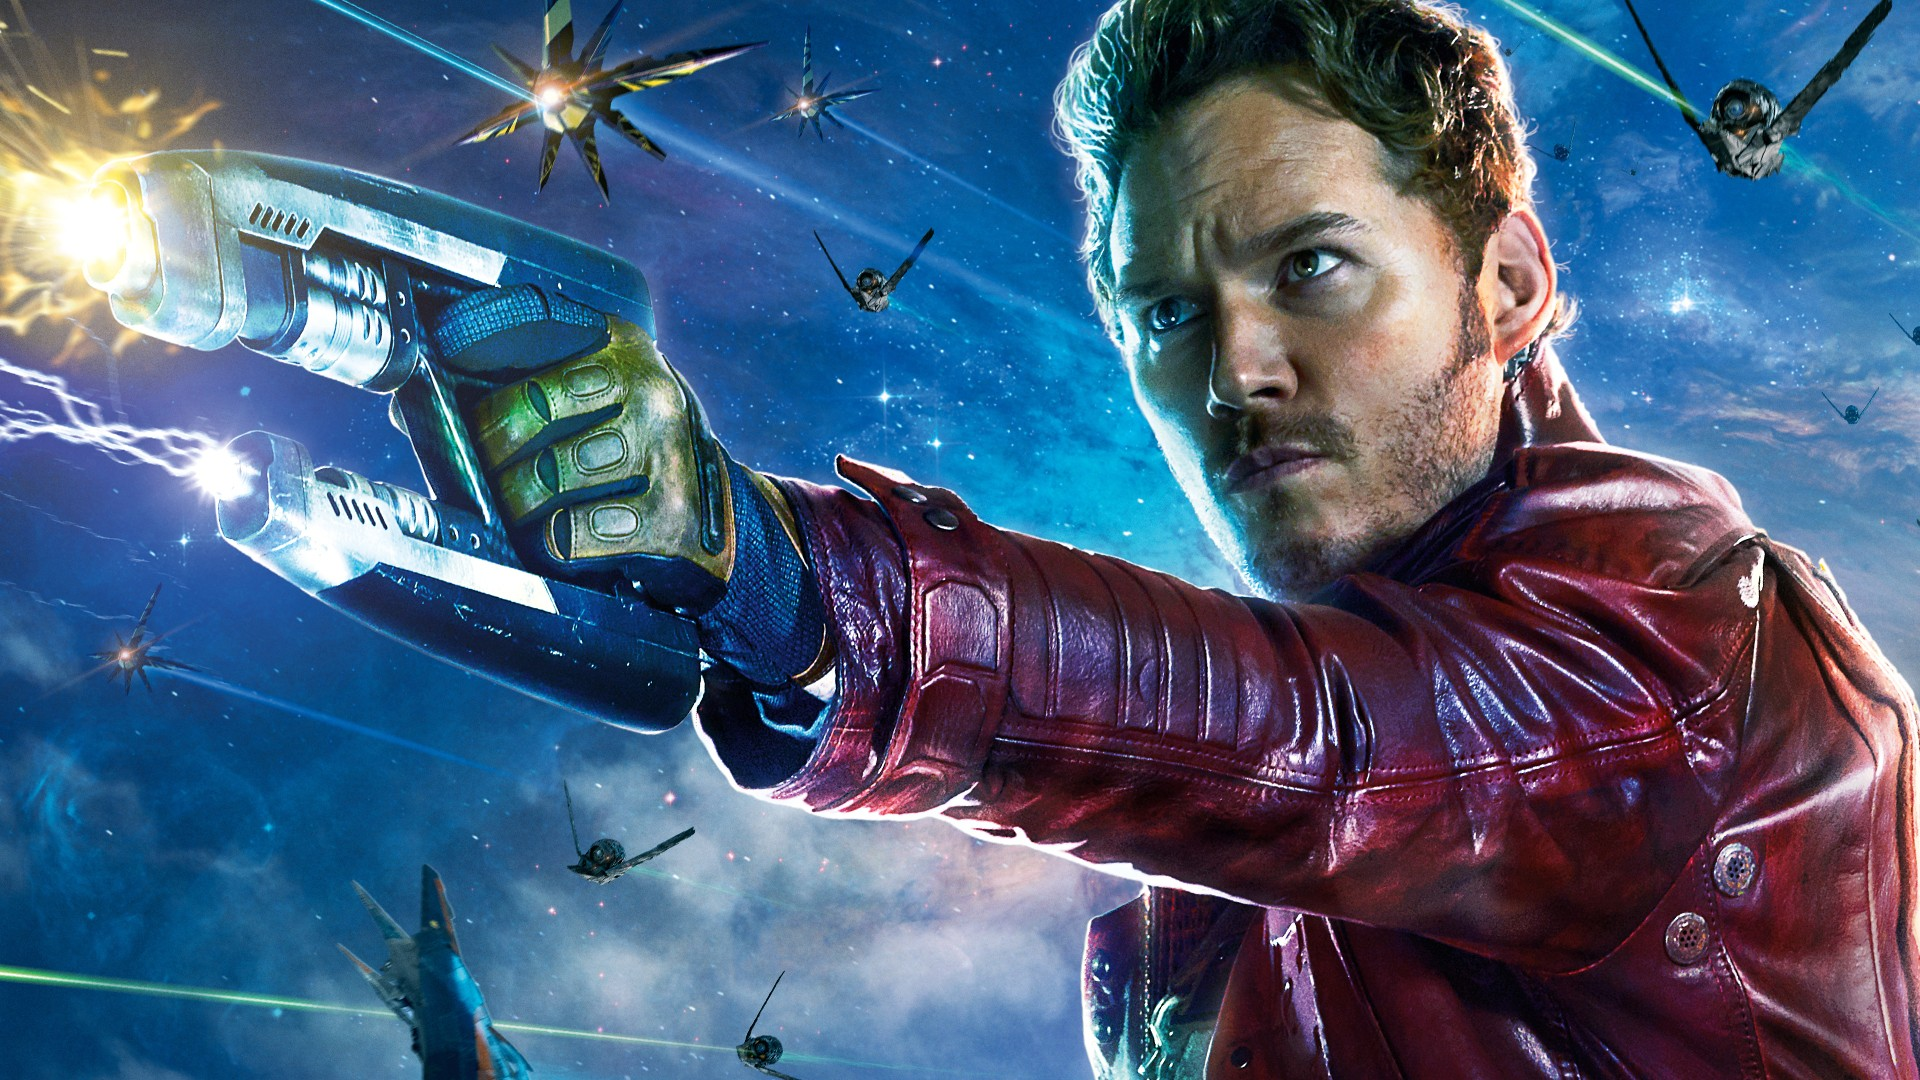 Chris Pratt Wallpapers High Resolution and Quality Download